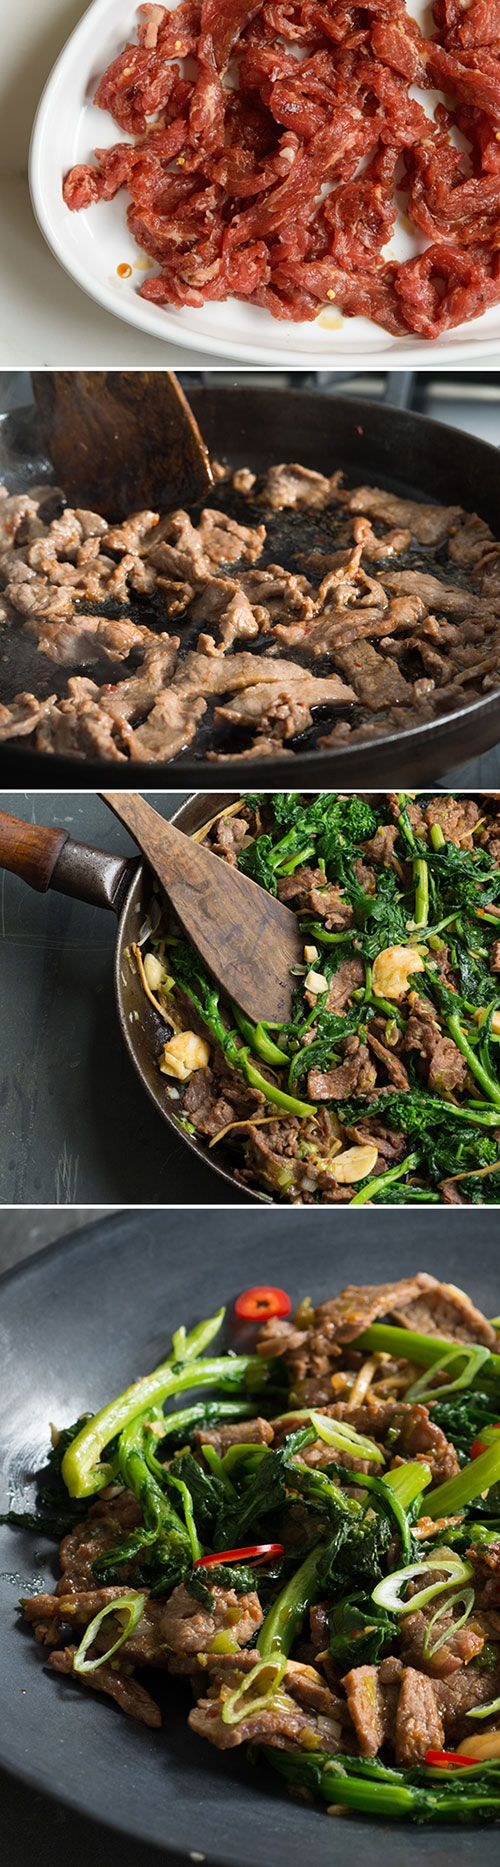 Stir fry, Beef and Fries recipe on Pinterest